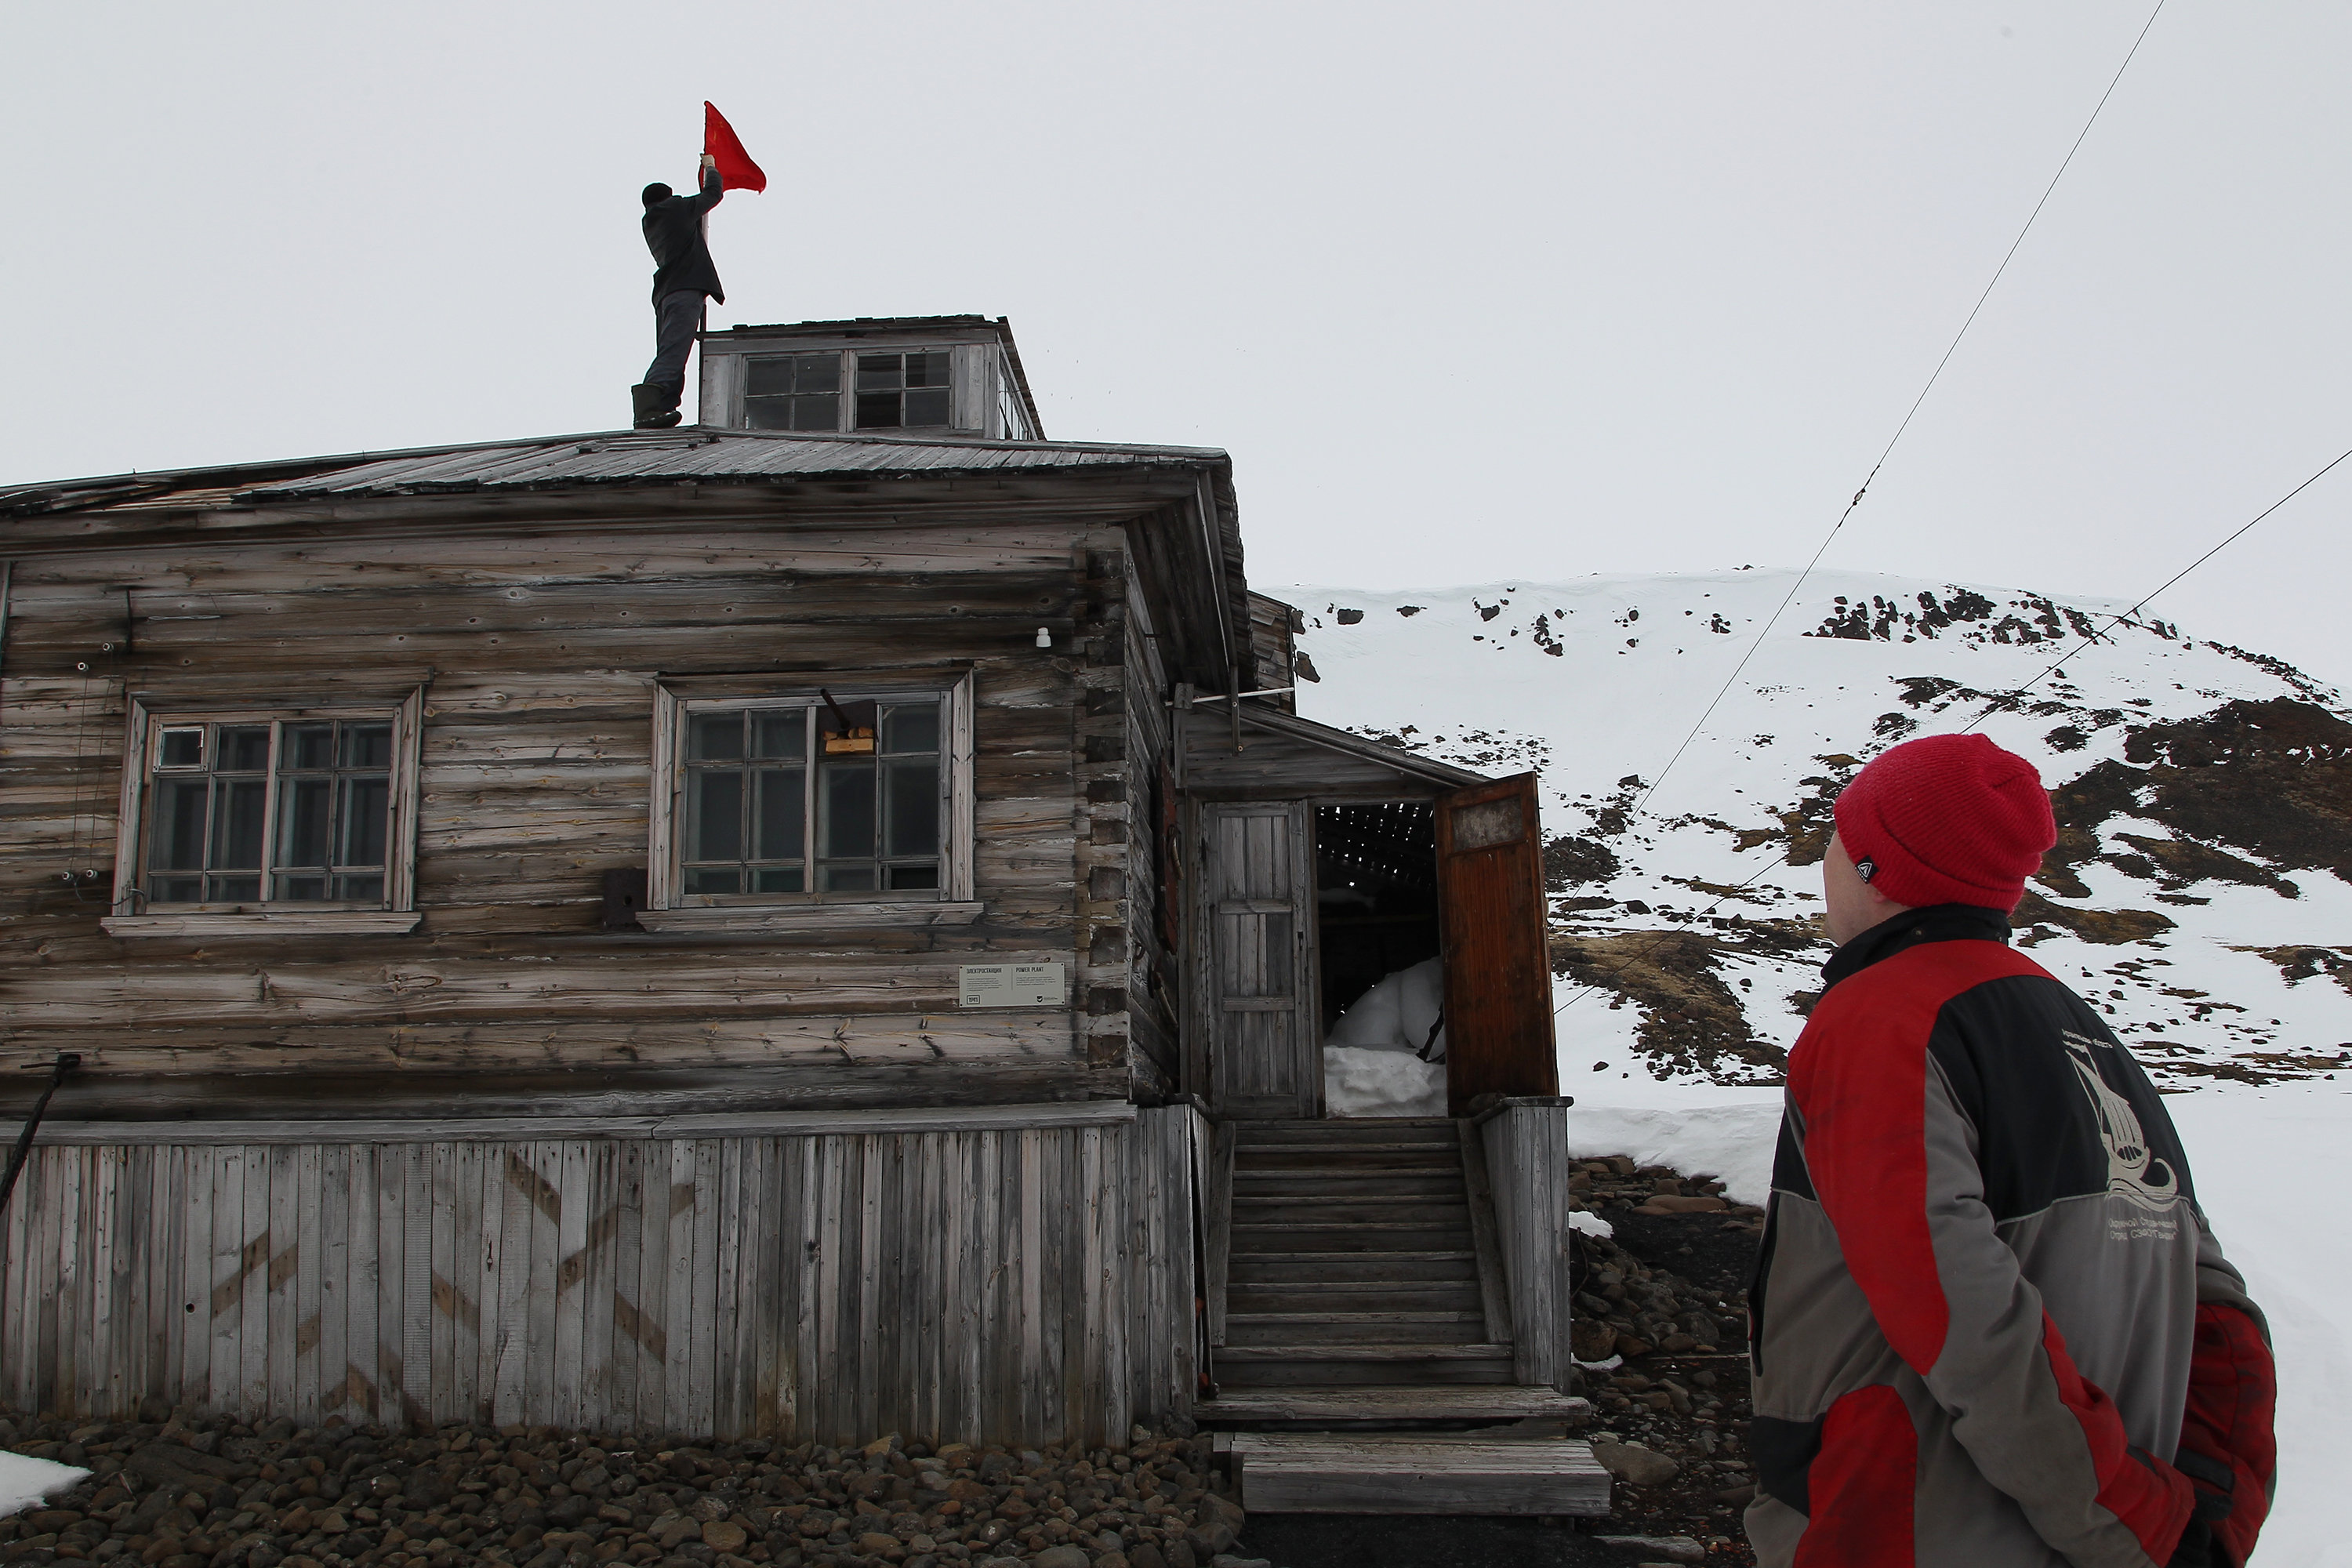 Installing a flag before the opening of the station, Franz Josef Land, Russian Arctic National Park